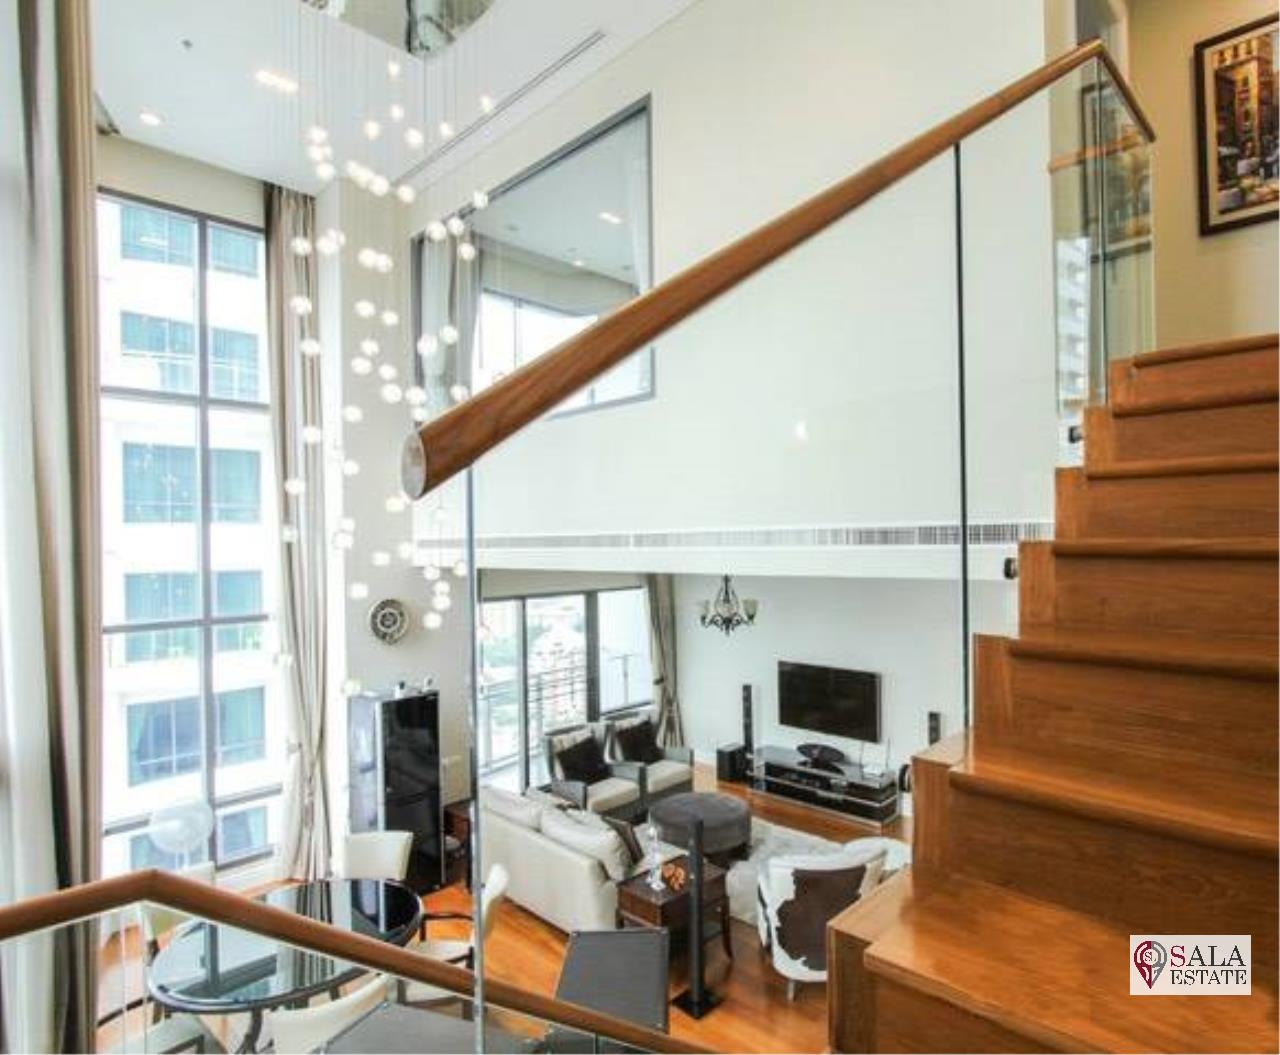 SALA ESTATE Agency's (FOR RENT) BRIGHT SUKHUMVIT 24 - BTS PHROM PHONG, DUPLEX TYPE,3 BEDROOMS 3 BATHROOMS, FULLY FURNISHED,CITY VIEW,HIGH FLOOR 5